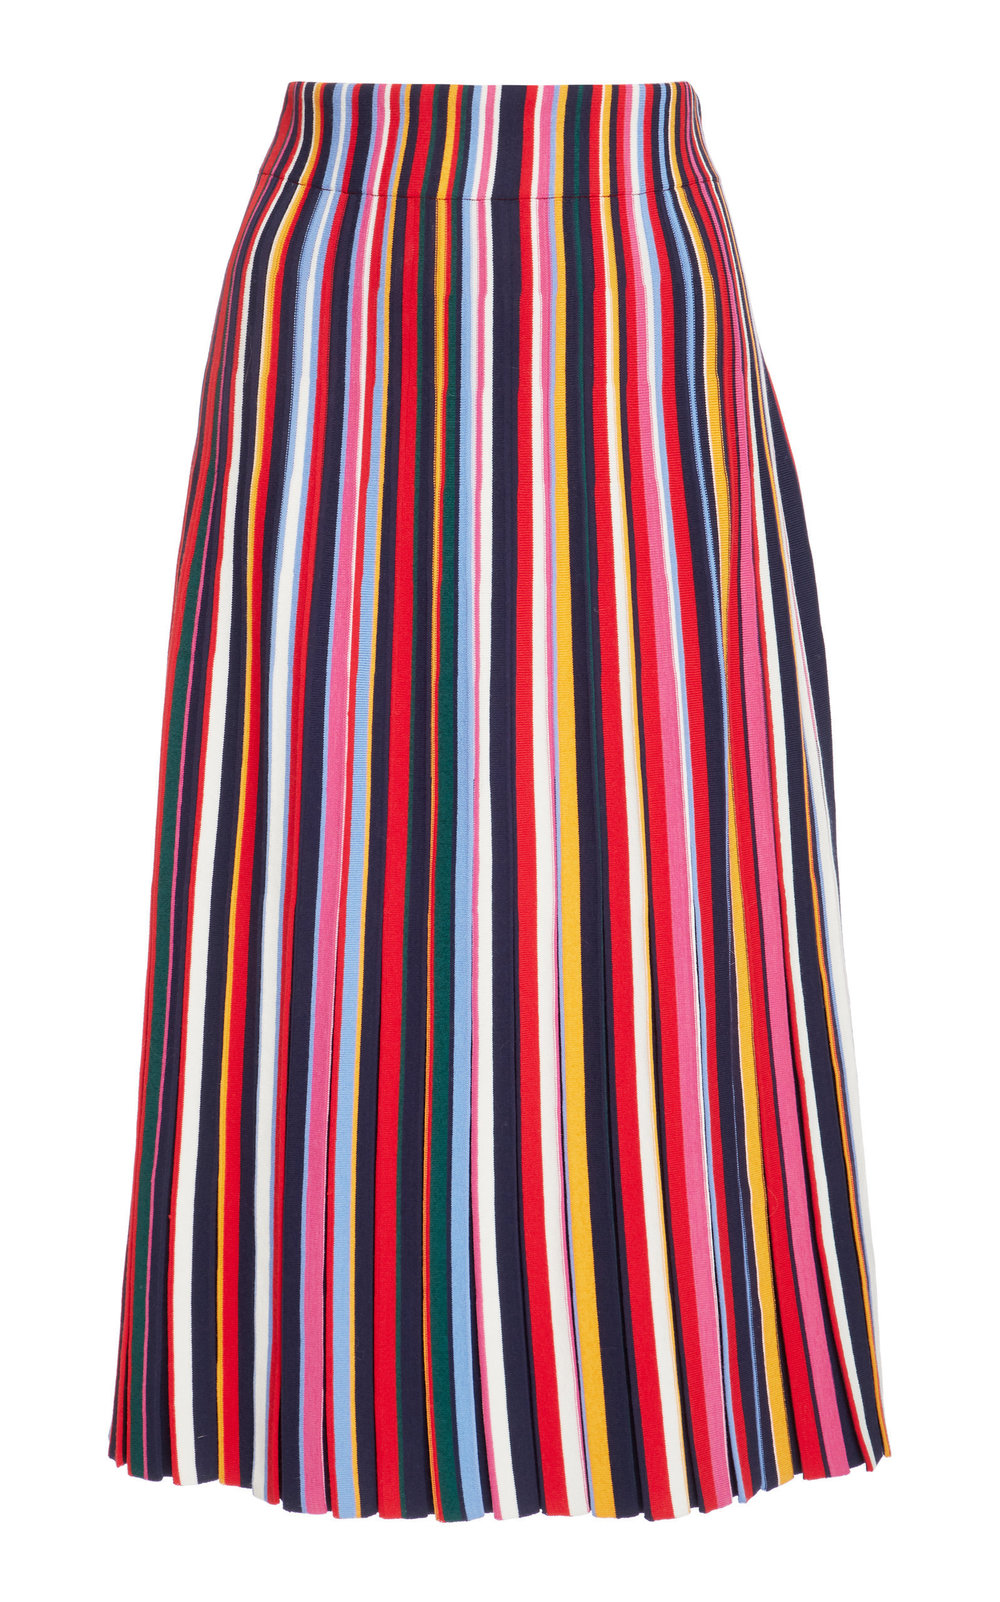 Tory Burch - Ellis Multicolored Skirt, $400